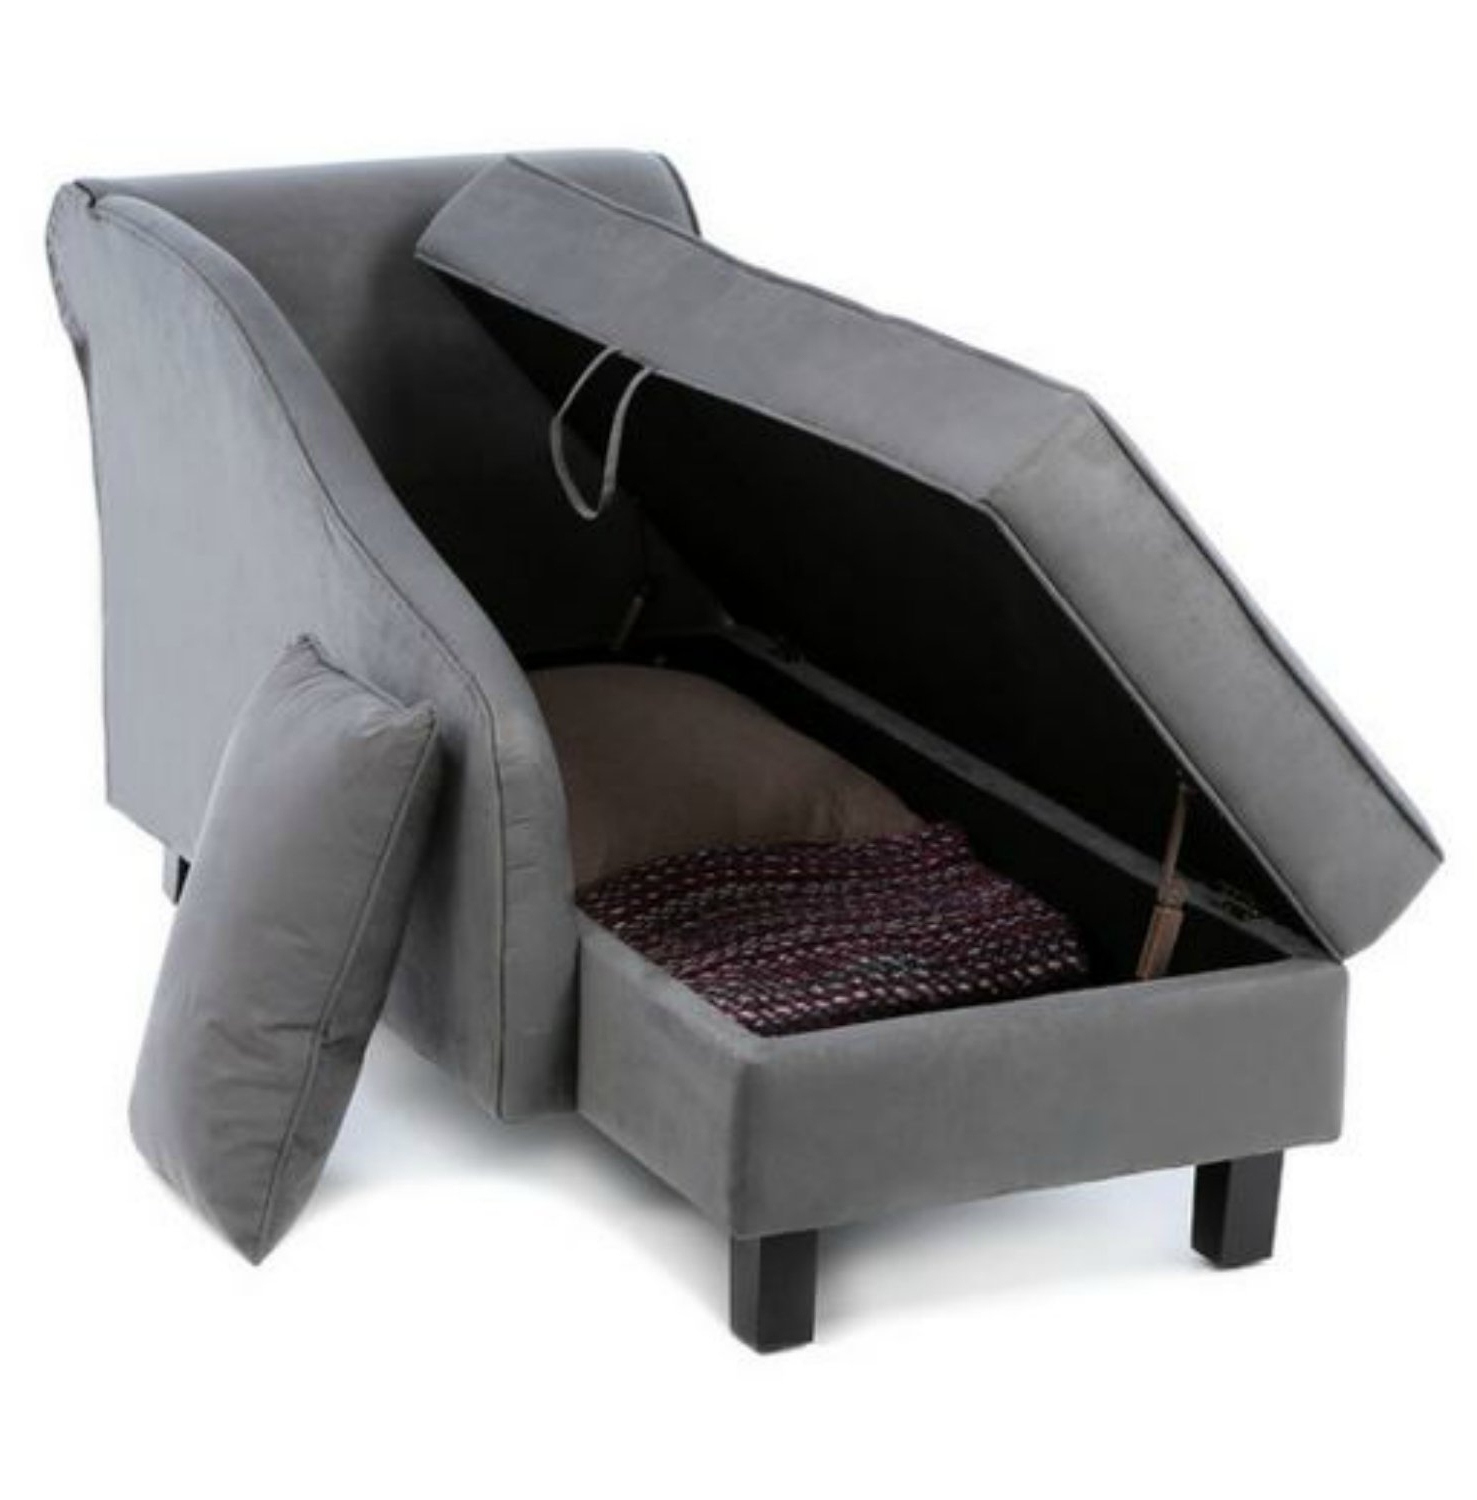 Well Known Grey Chaise Lounges Intended For Lounge Chair : Grey Chaise Lounge Chair Chez Long Chair' Leather (View 9 of 15)